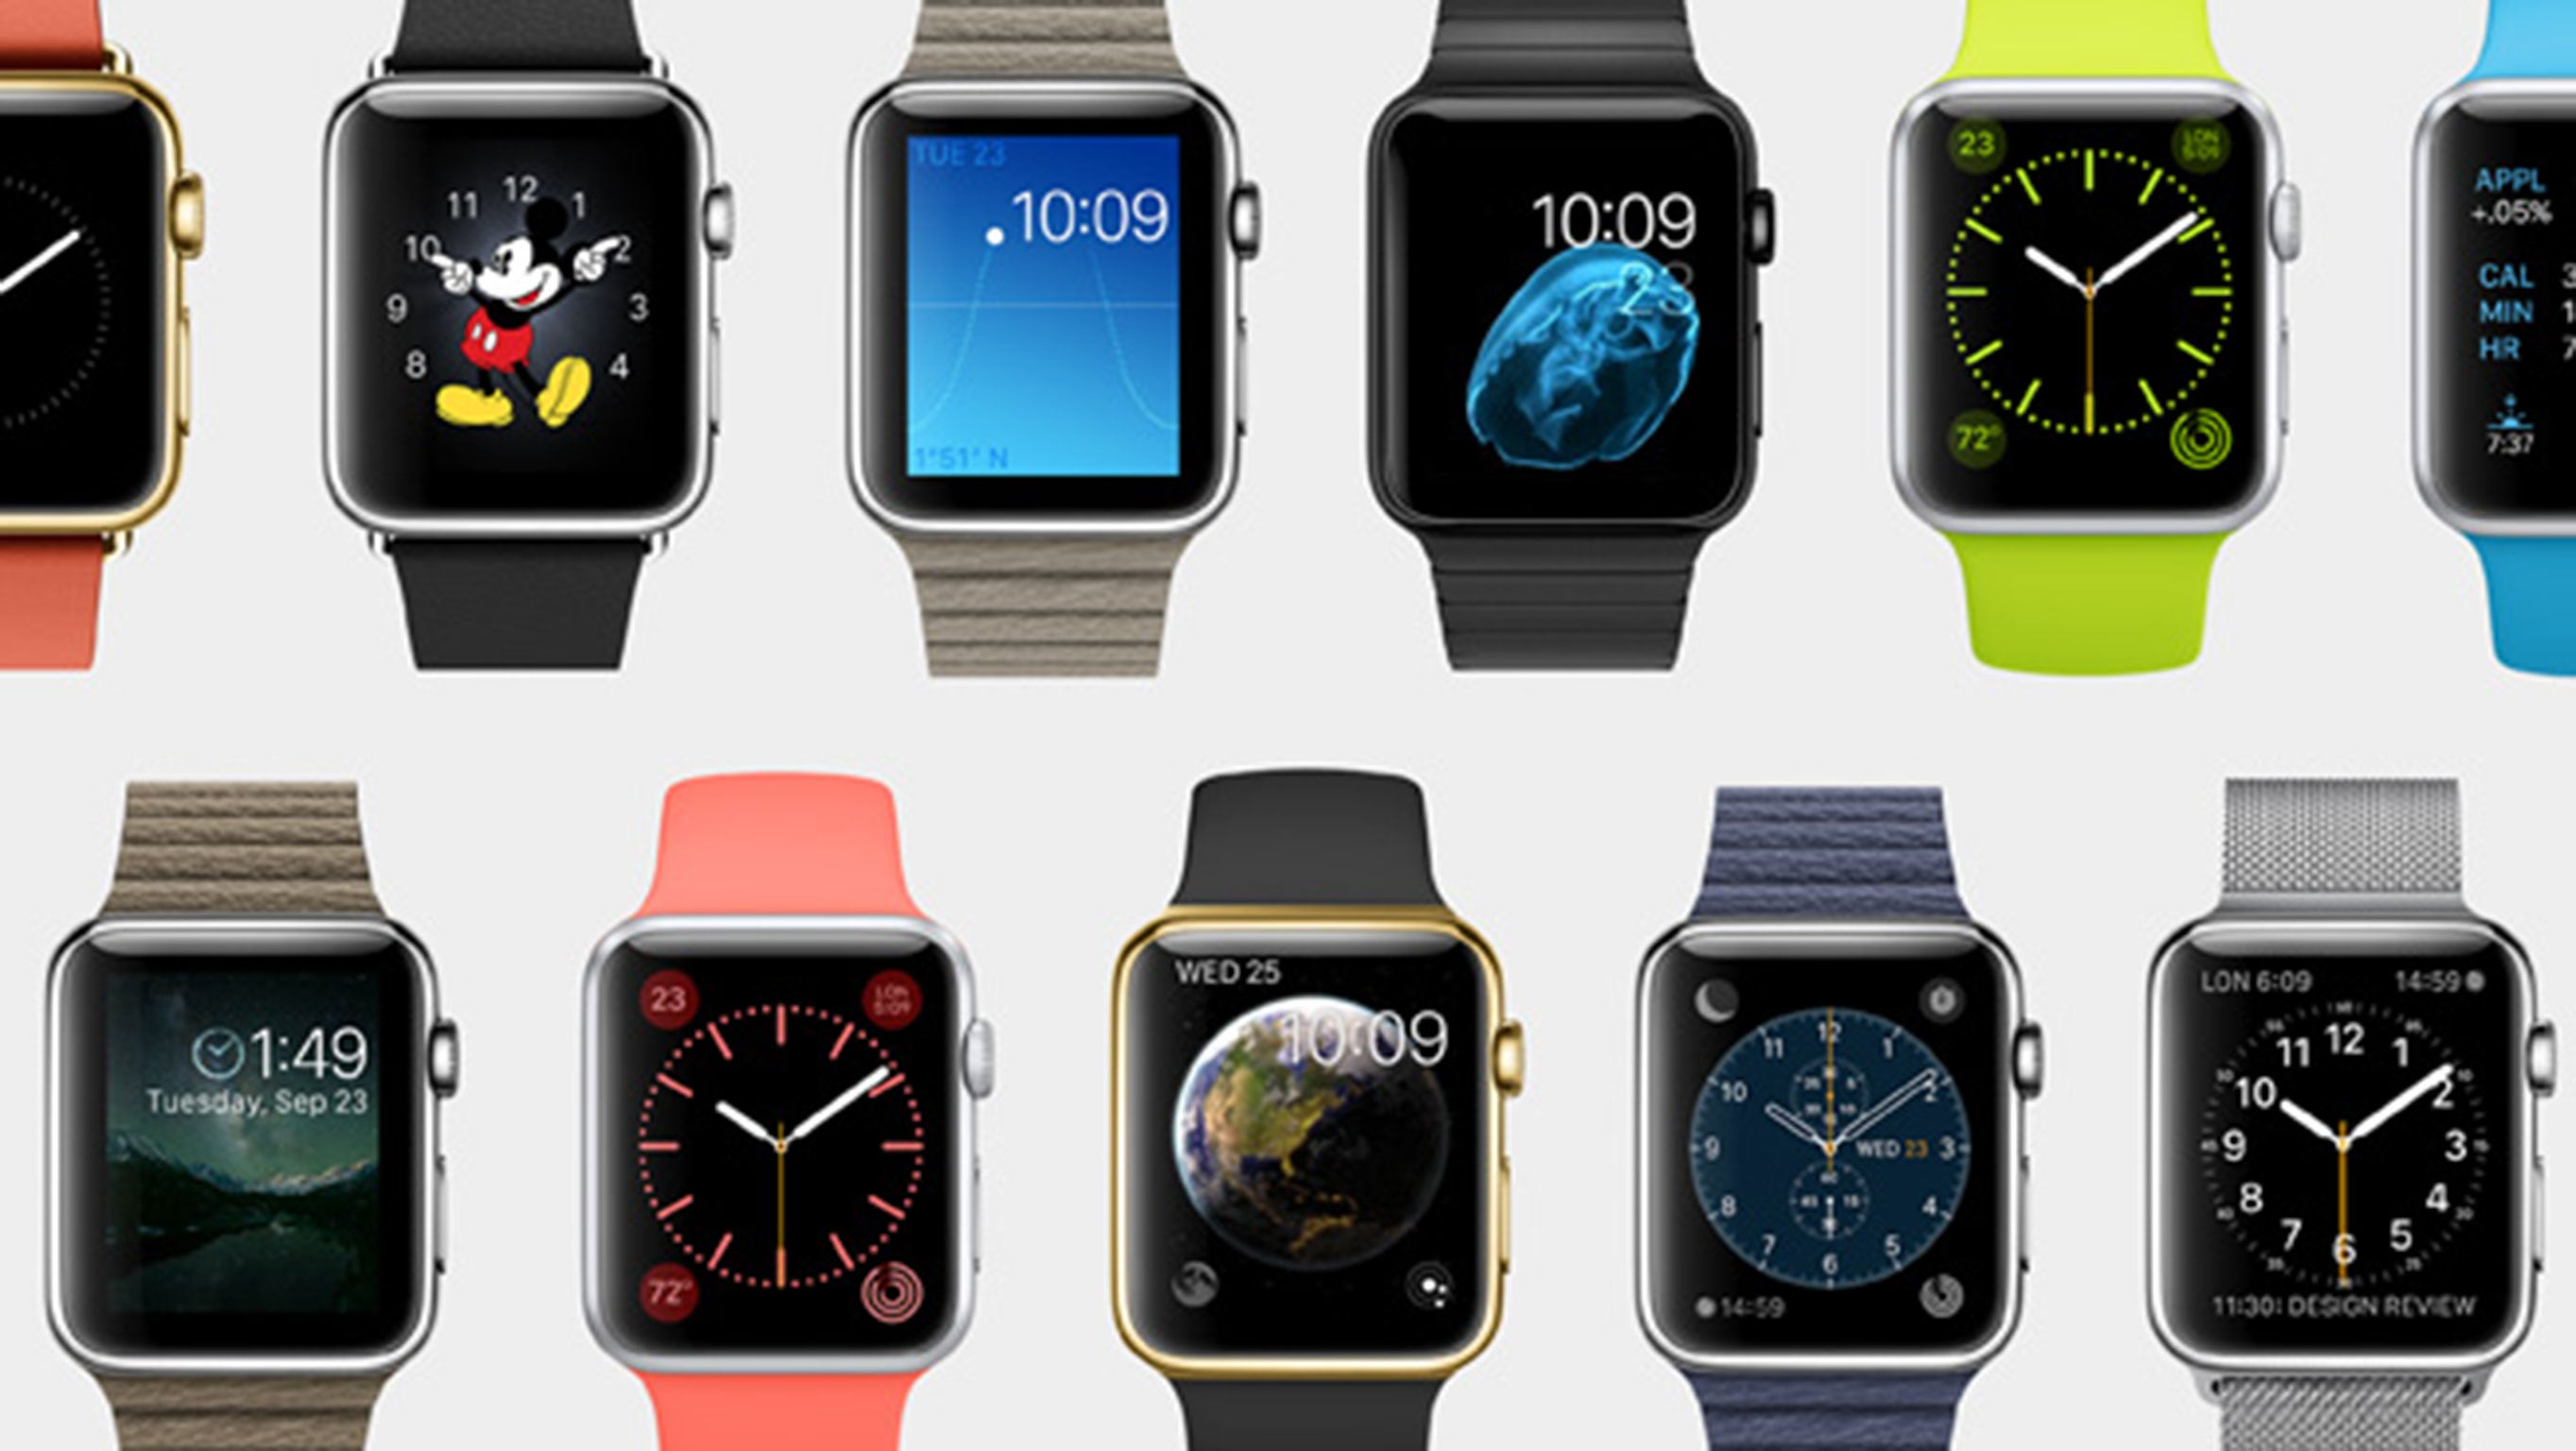 timeless design 20946 0c6f2 Apple Watch, iPhone 6 and iPhone 6 Plus: Everything you need to know ...